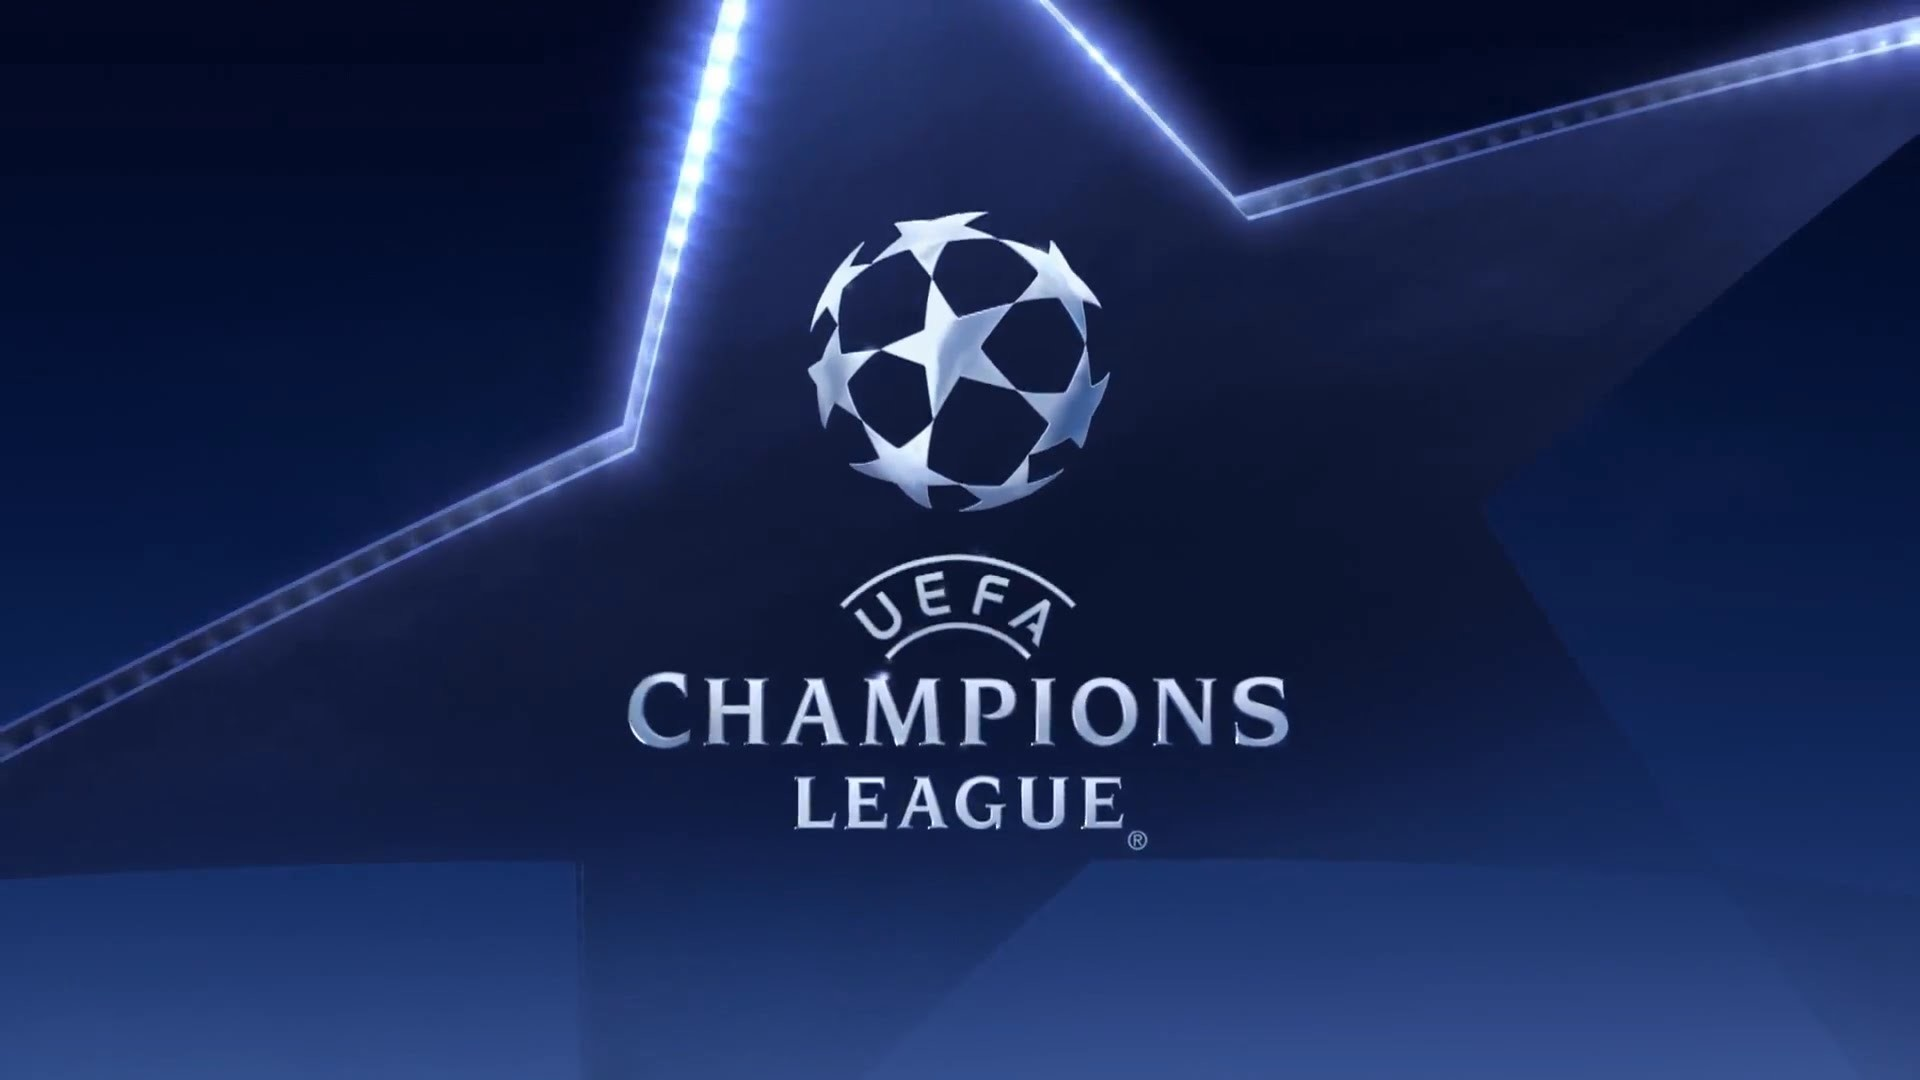 Uefa Champions League Wallpaper (73+ images)